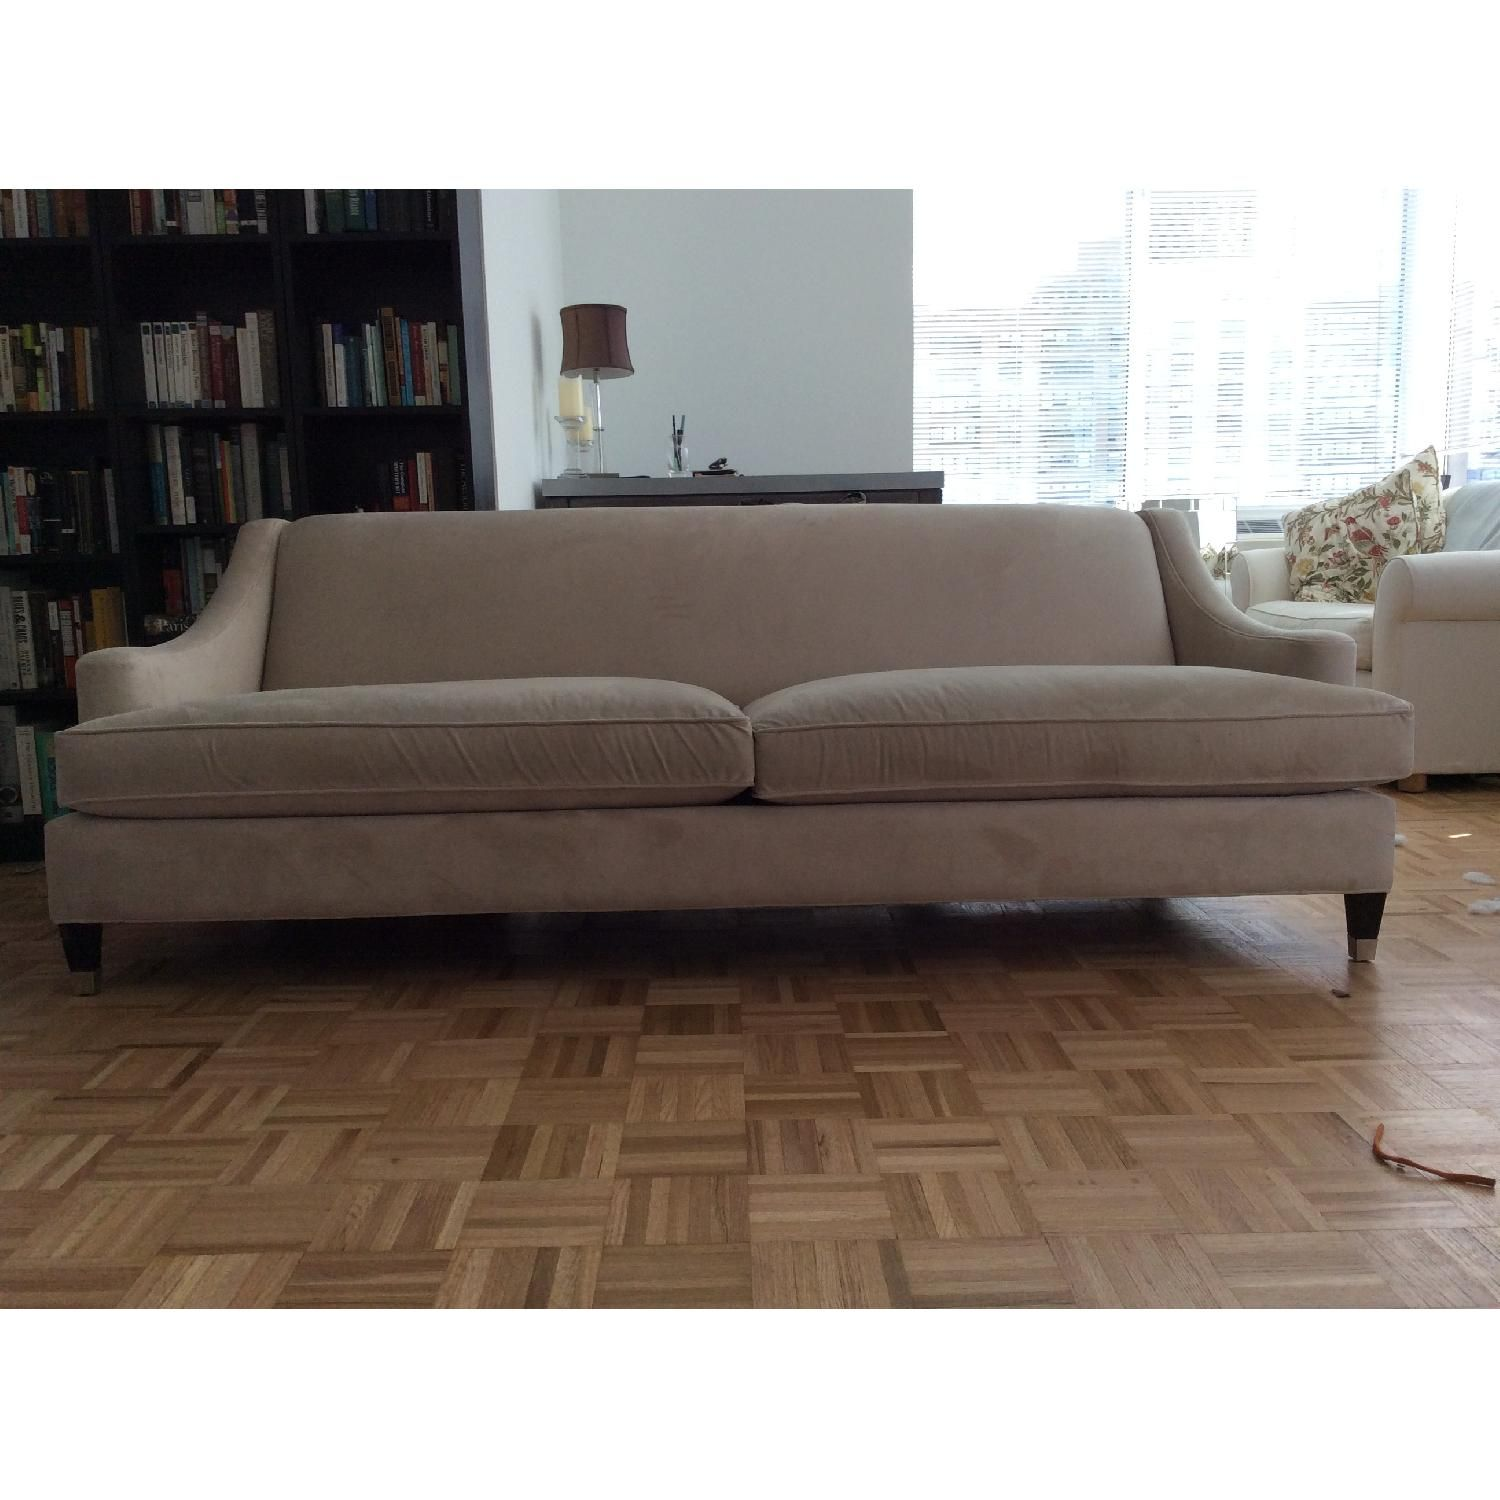 Room & Board Loring Sofa 5 secondhand sofas Pinterest